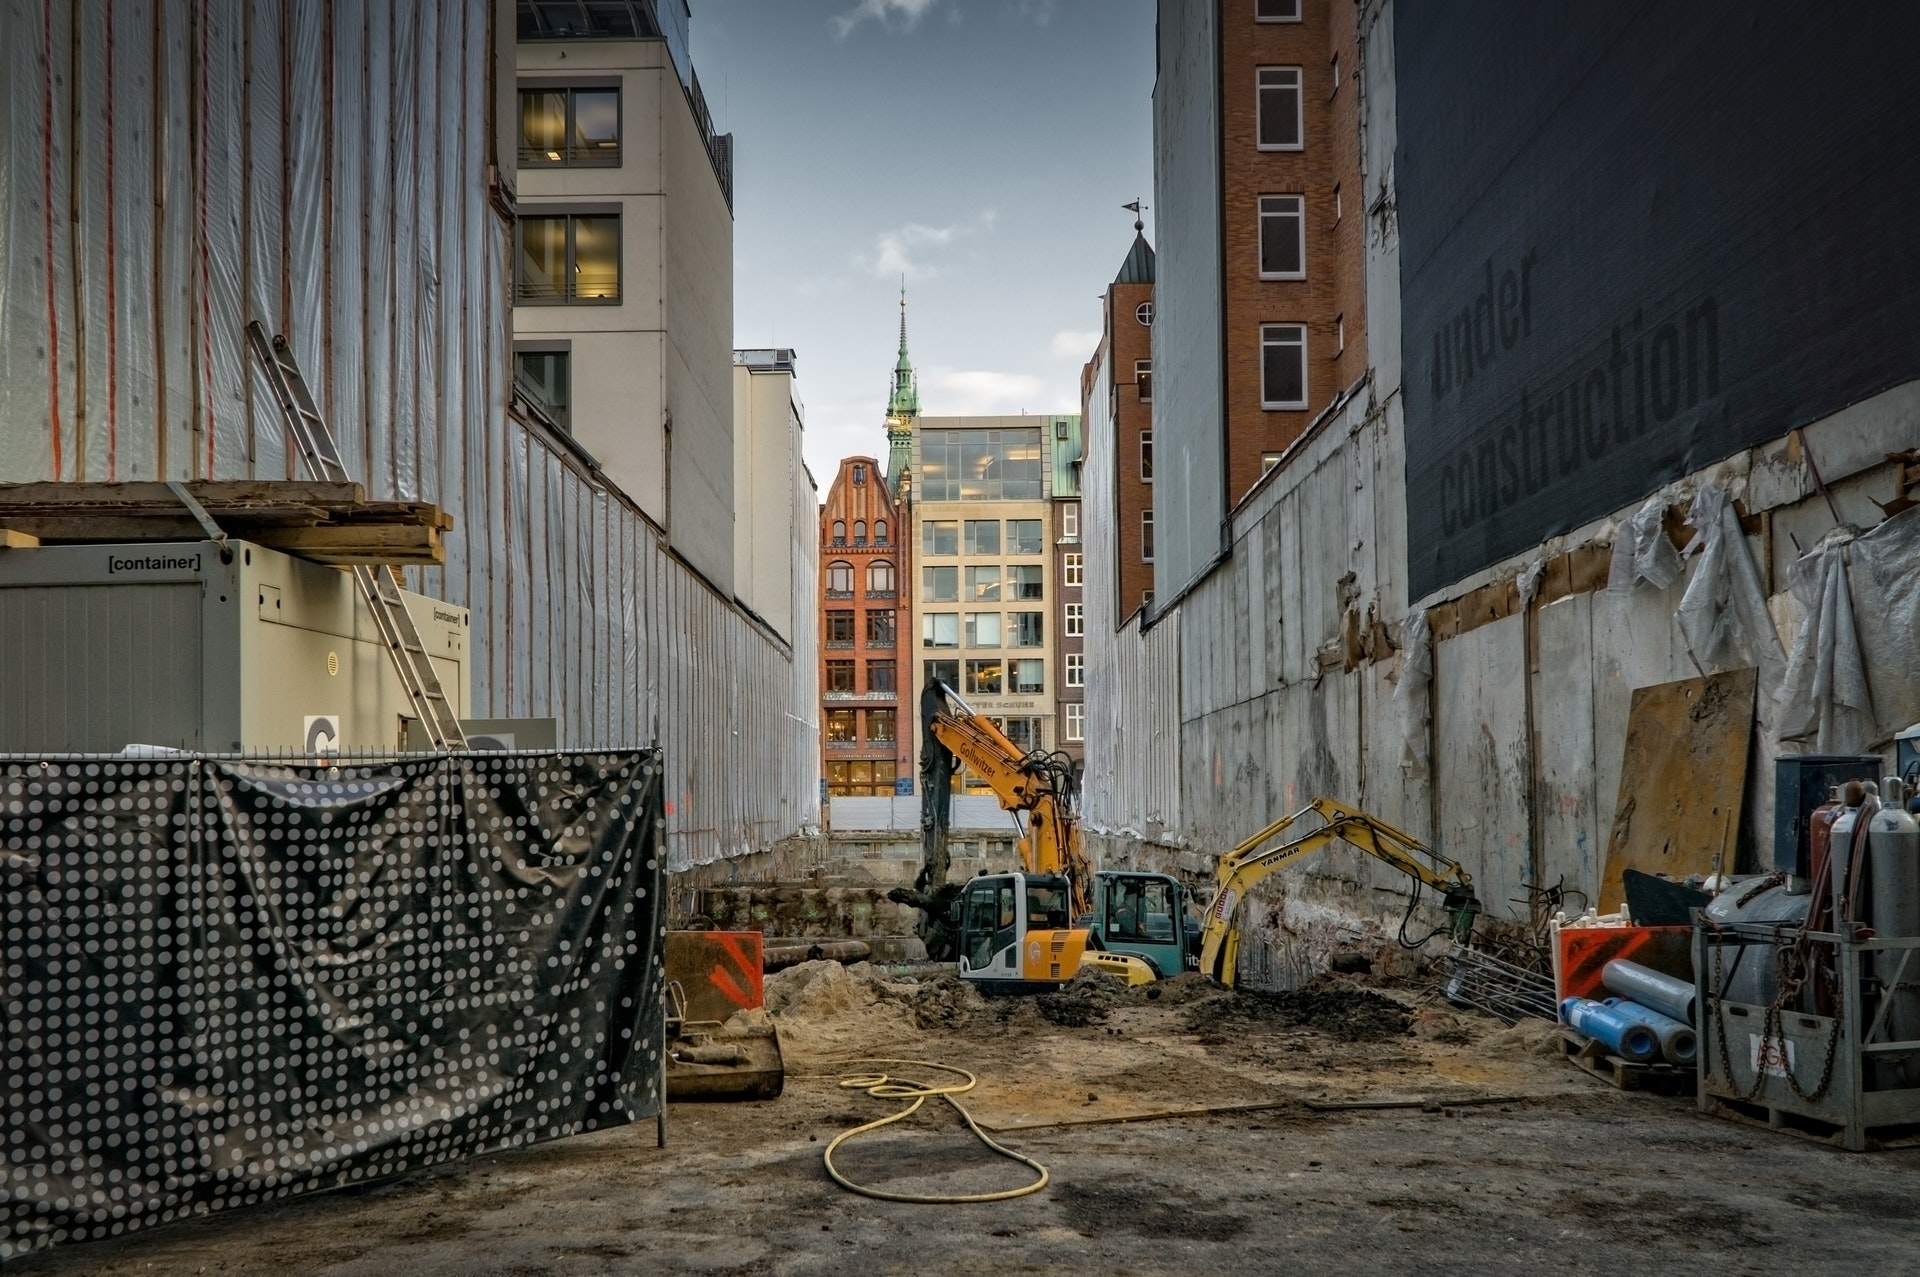 an image of an empty construction site